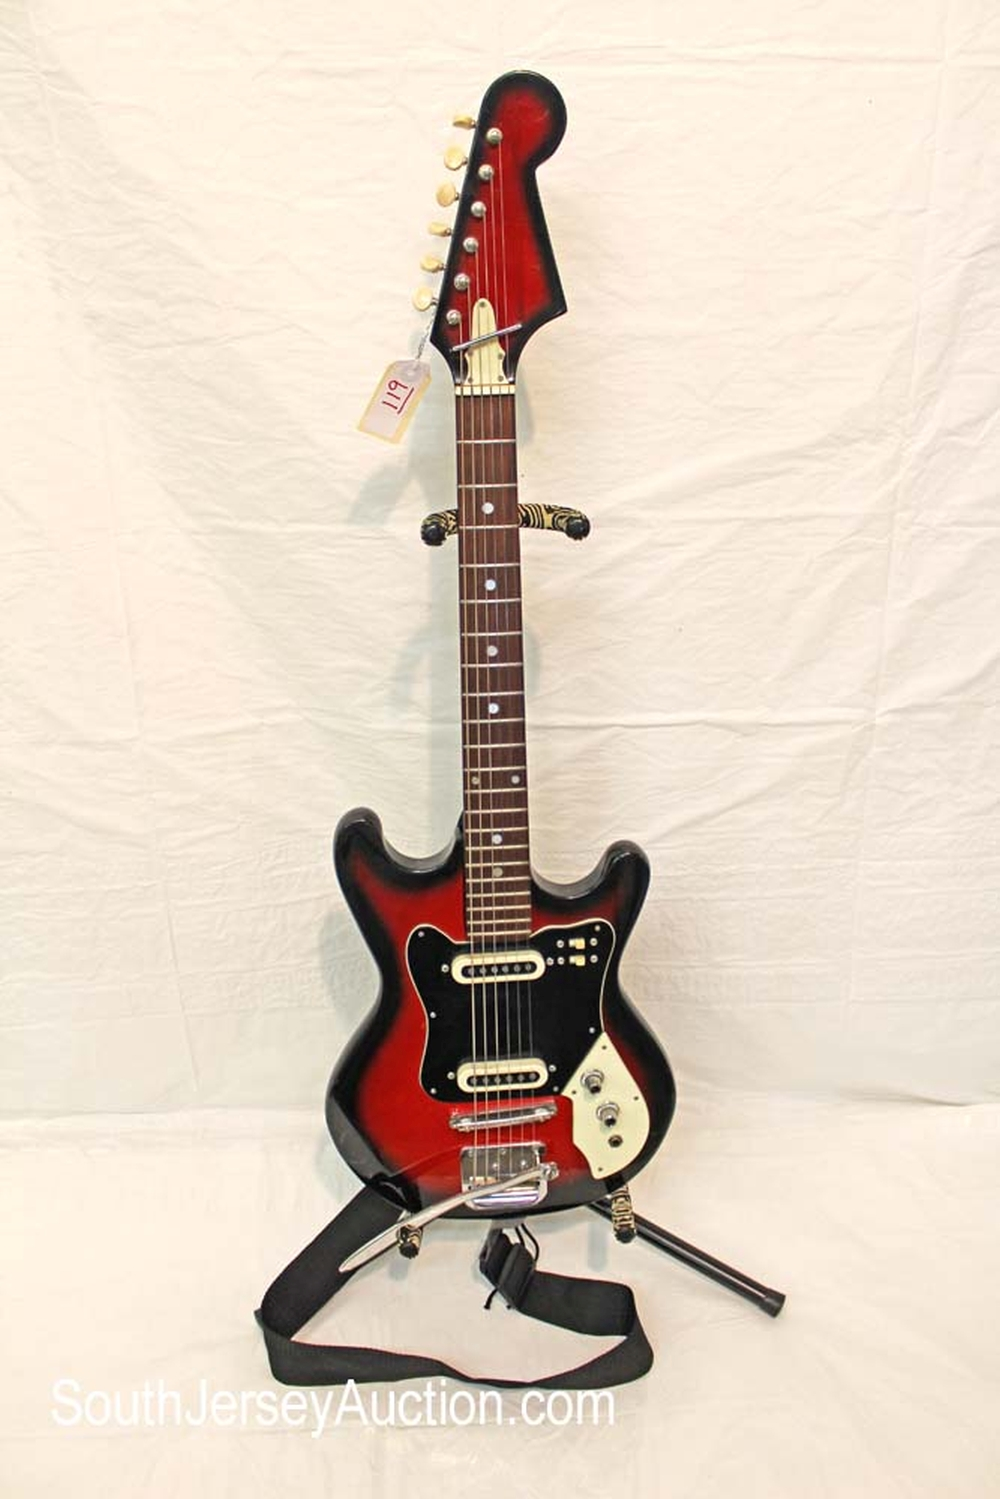 1960 Teisco, VERY RARE guitar, made in Japan, with whammy bar, all original,  in good shape with original pick ups, with light scratches